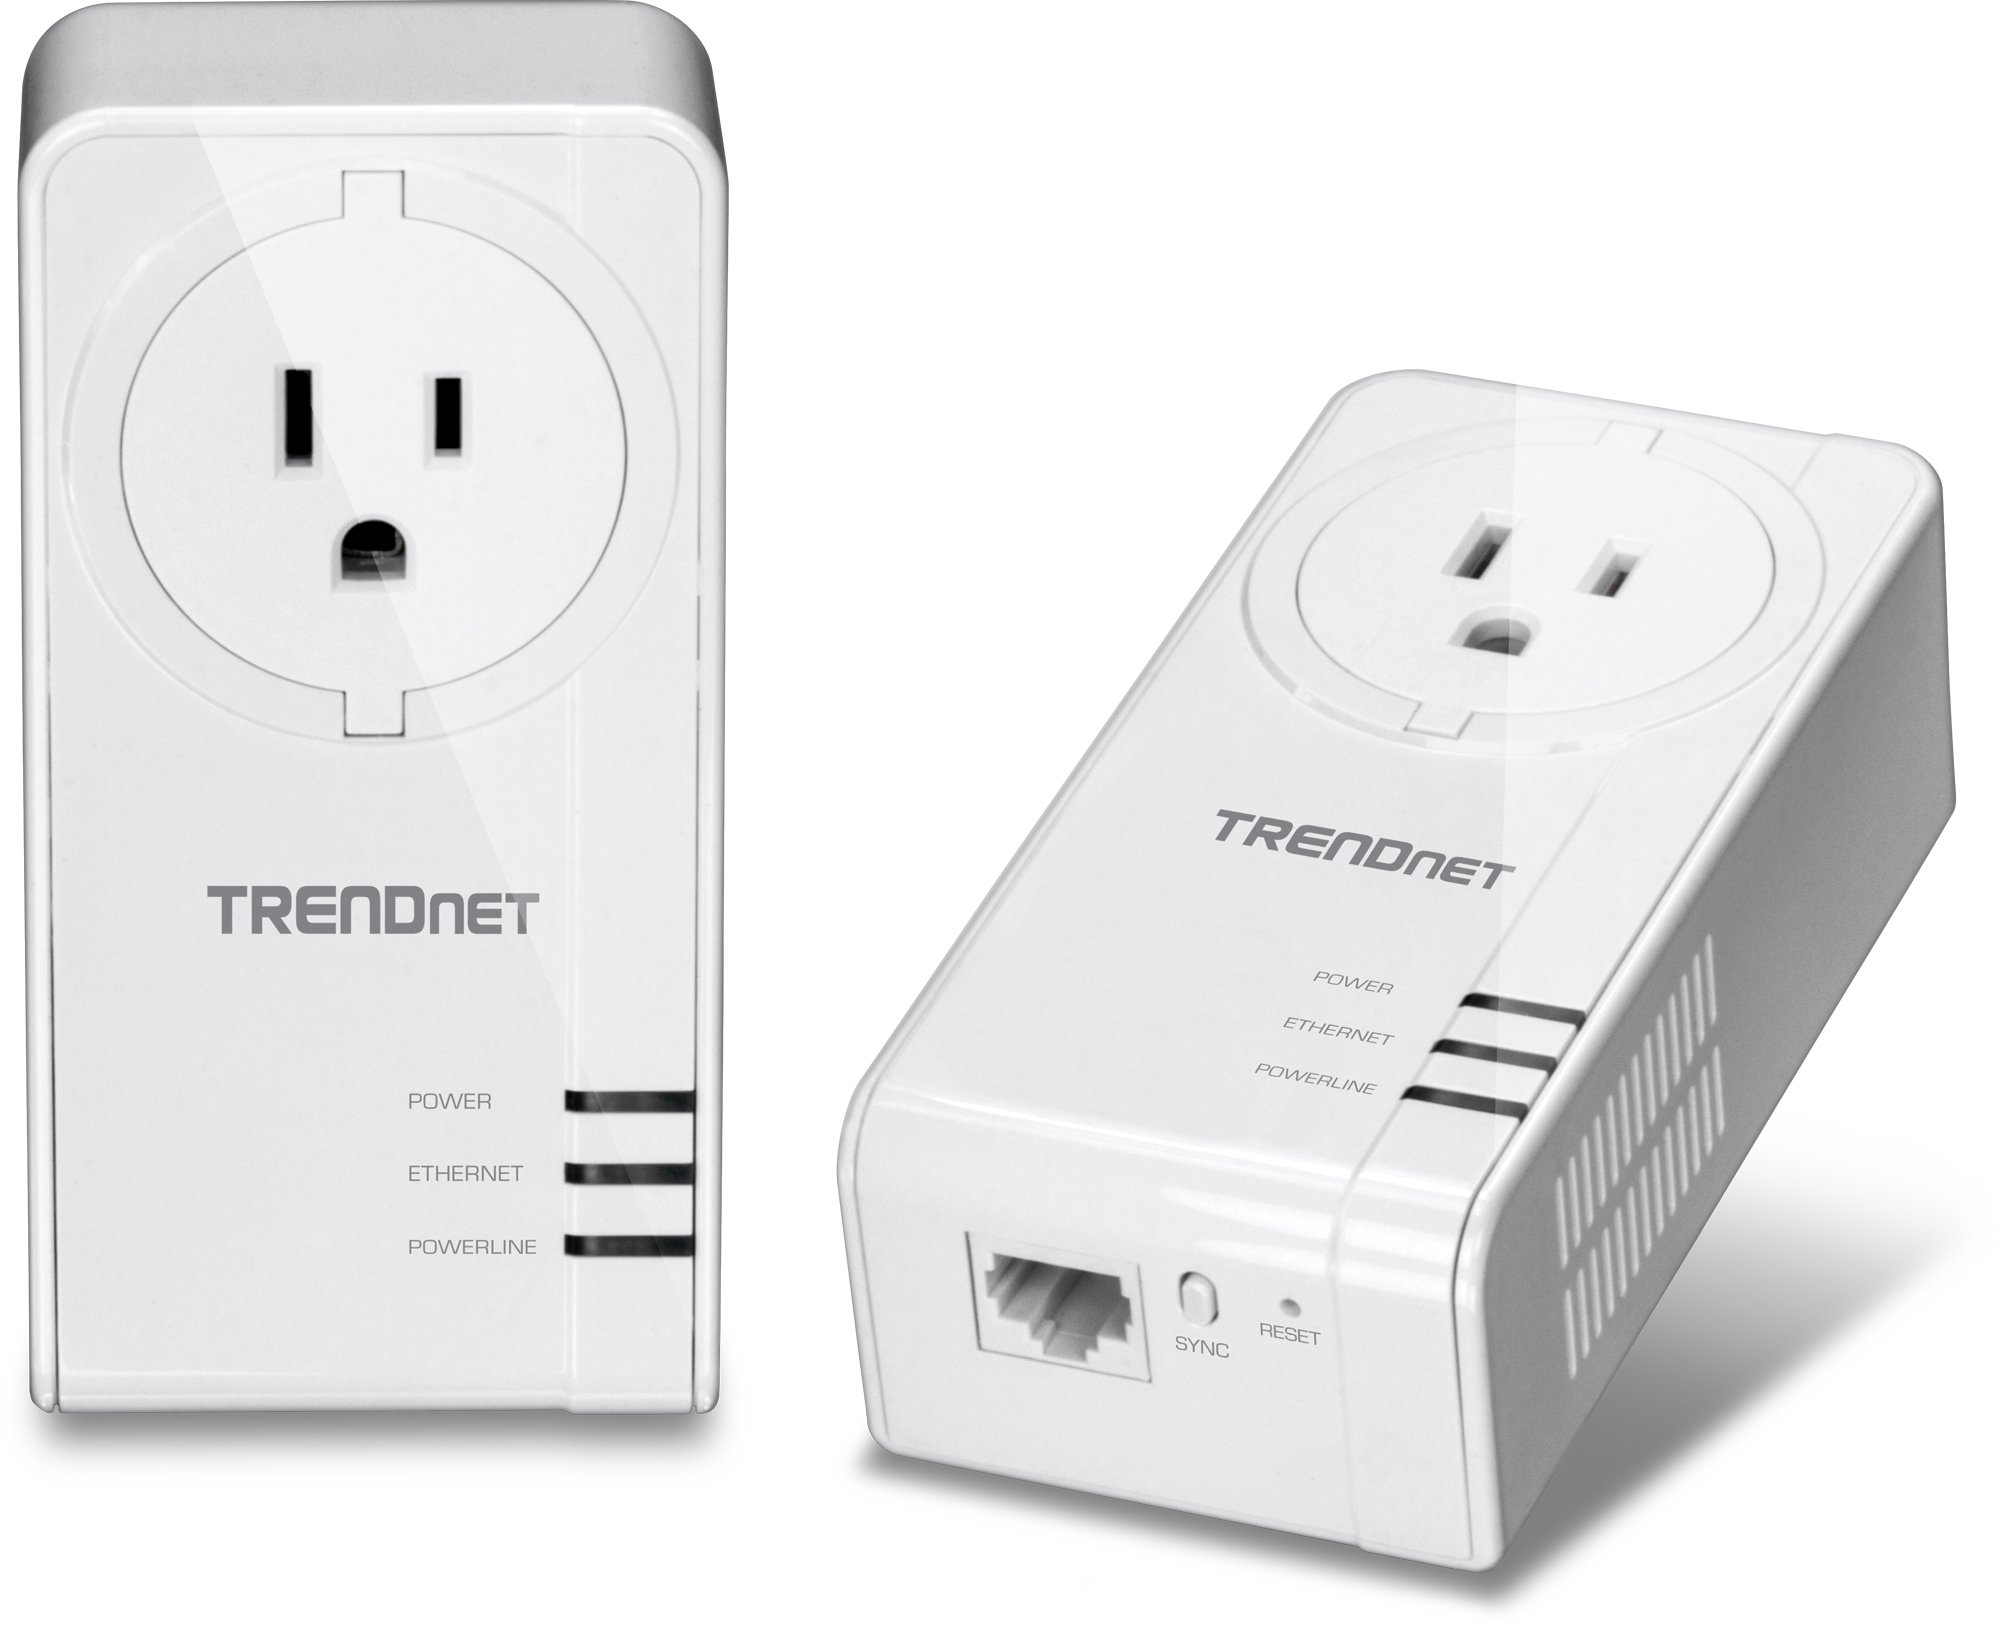 TRENDnet Powerline 1200 AV2 Adapter Kit with Built-in Outlet, 2 x TPL-421E Adapters, Gigabit Port, Plug and Play, MIMO, Beamforming, TPL-421E2K by TRENDnet